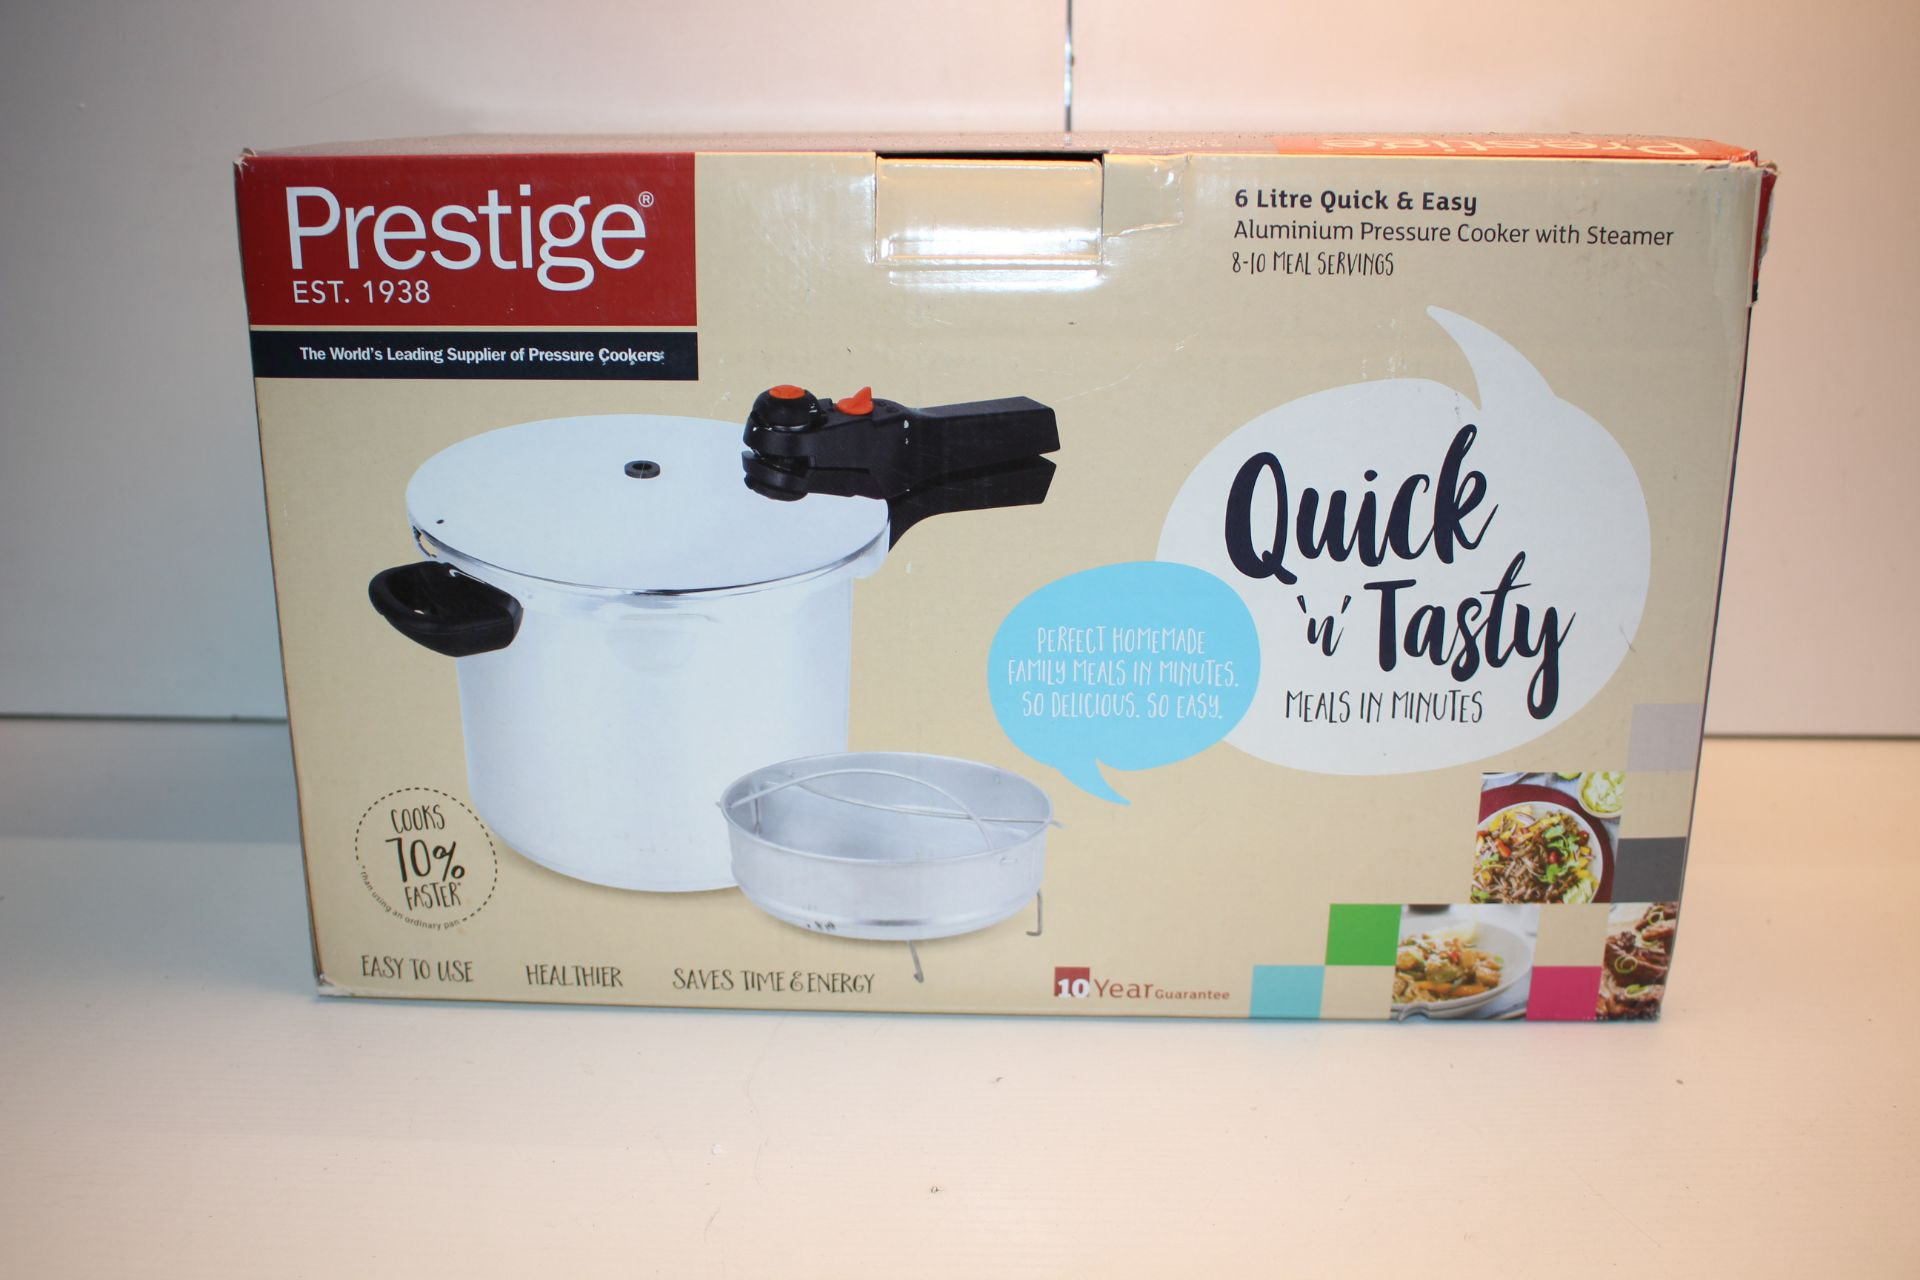 BOXED PRESTIGE QUICK AND TASTY 6 LITRE PRESDSURE COOKER WITH STEAMERCondition ReportAppraisal